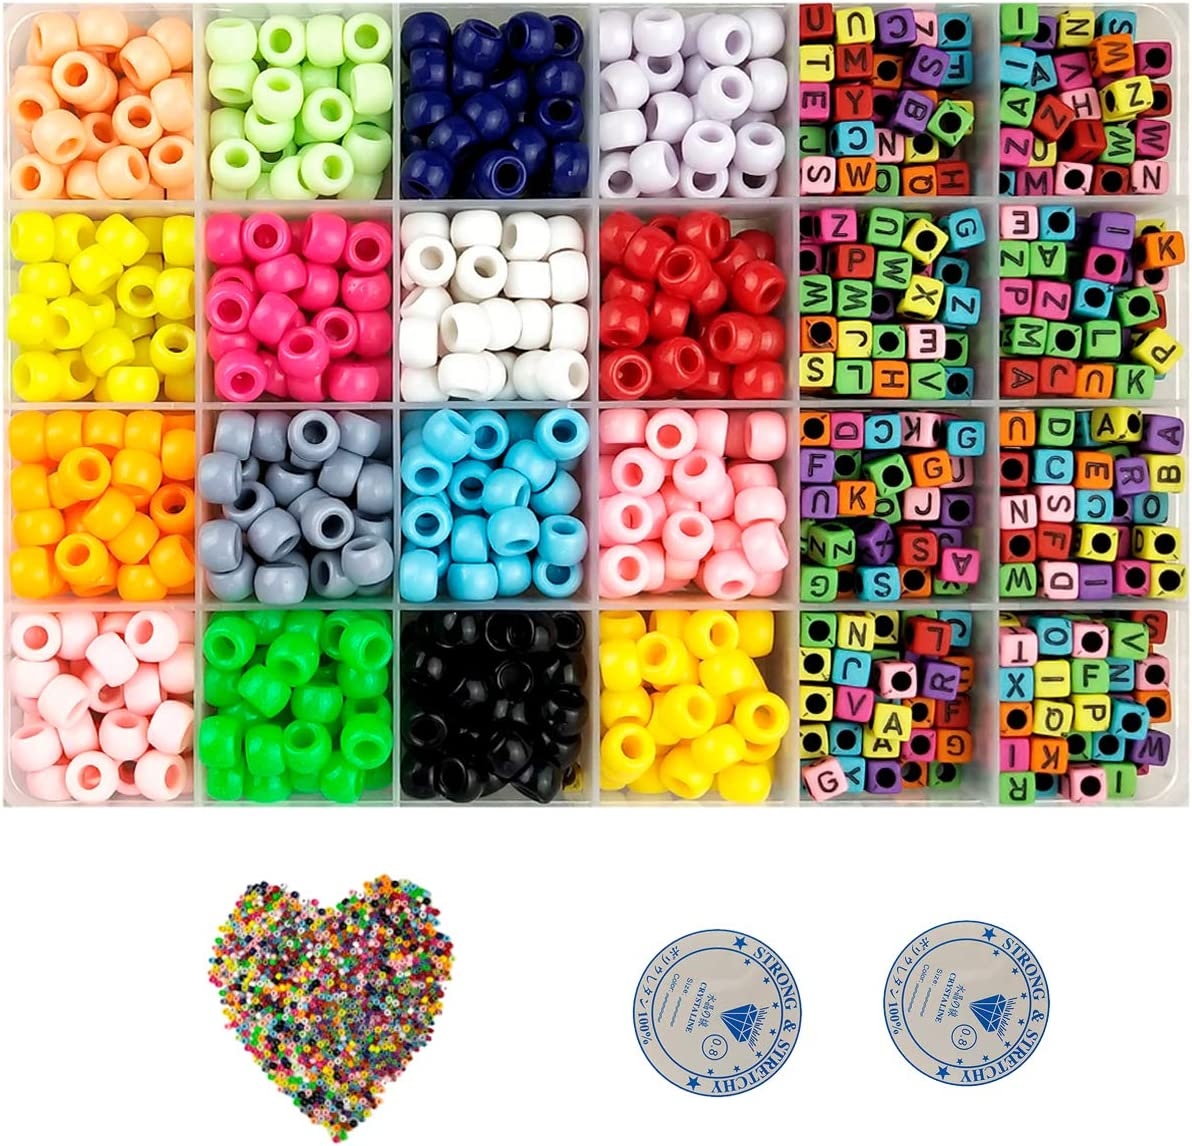 Finatider DIY Beads for Kids Beads for Bracelets Letter Alphabet Glass Beads for Name Bracelets Beads for Jewelry Making for Birthday Party Christmas Gift for Girls Crafts Kids Ages 8-14